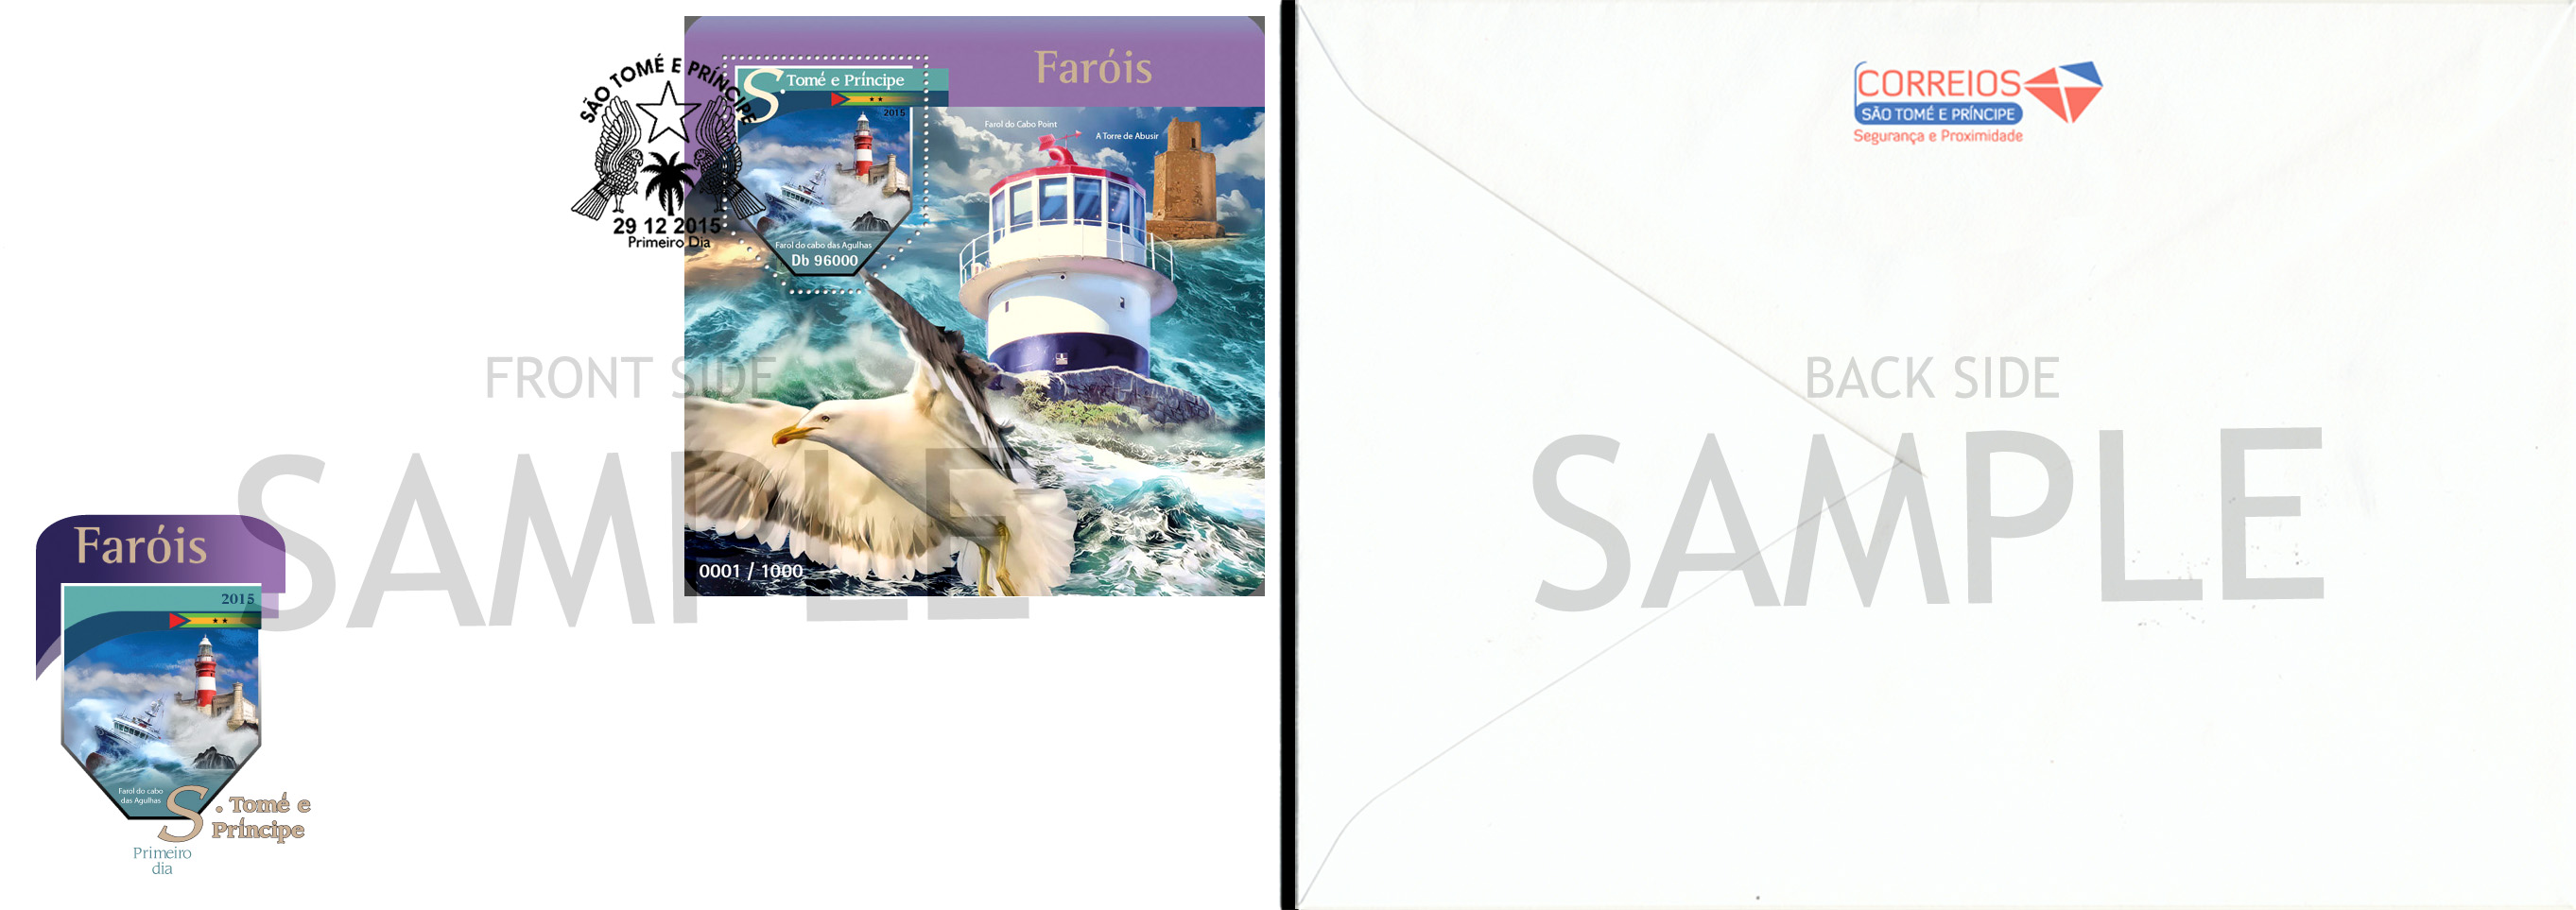 FDC Sample - Issue of Sao Tome and Principe postage stamps